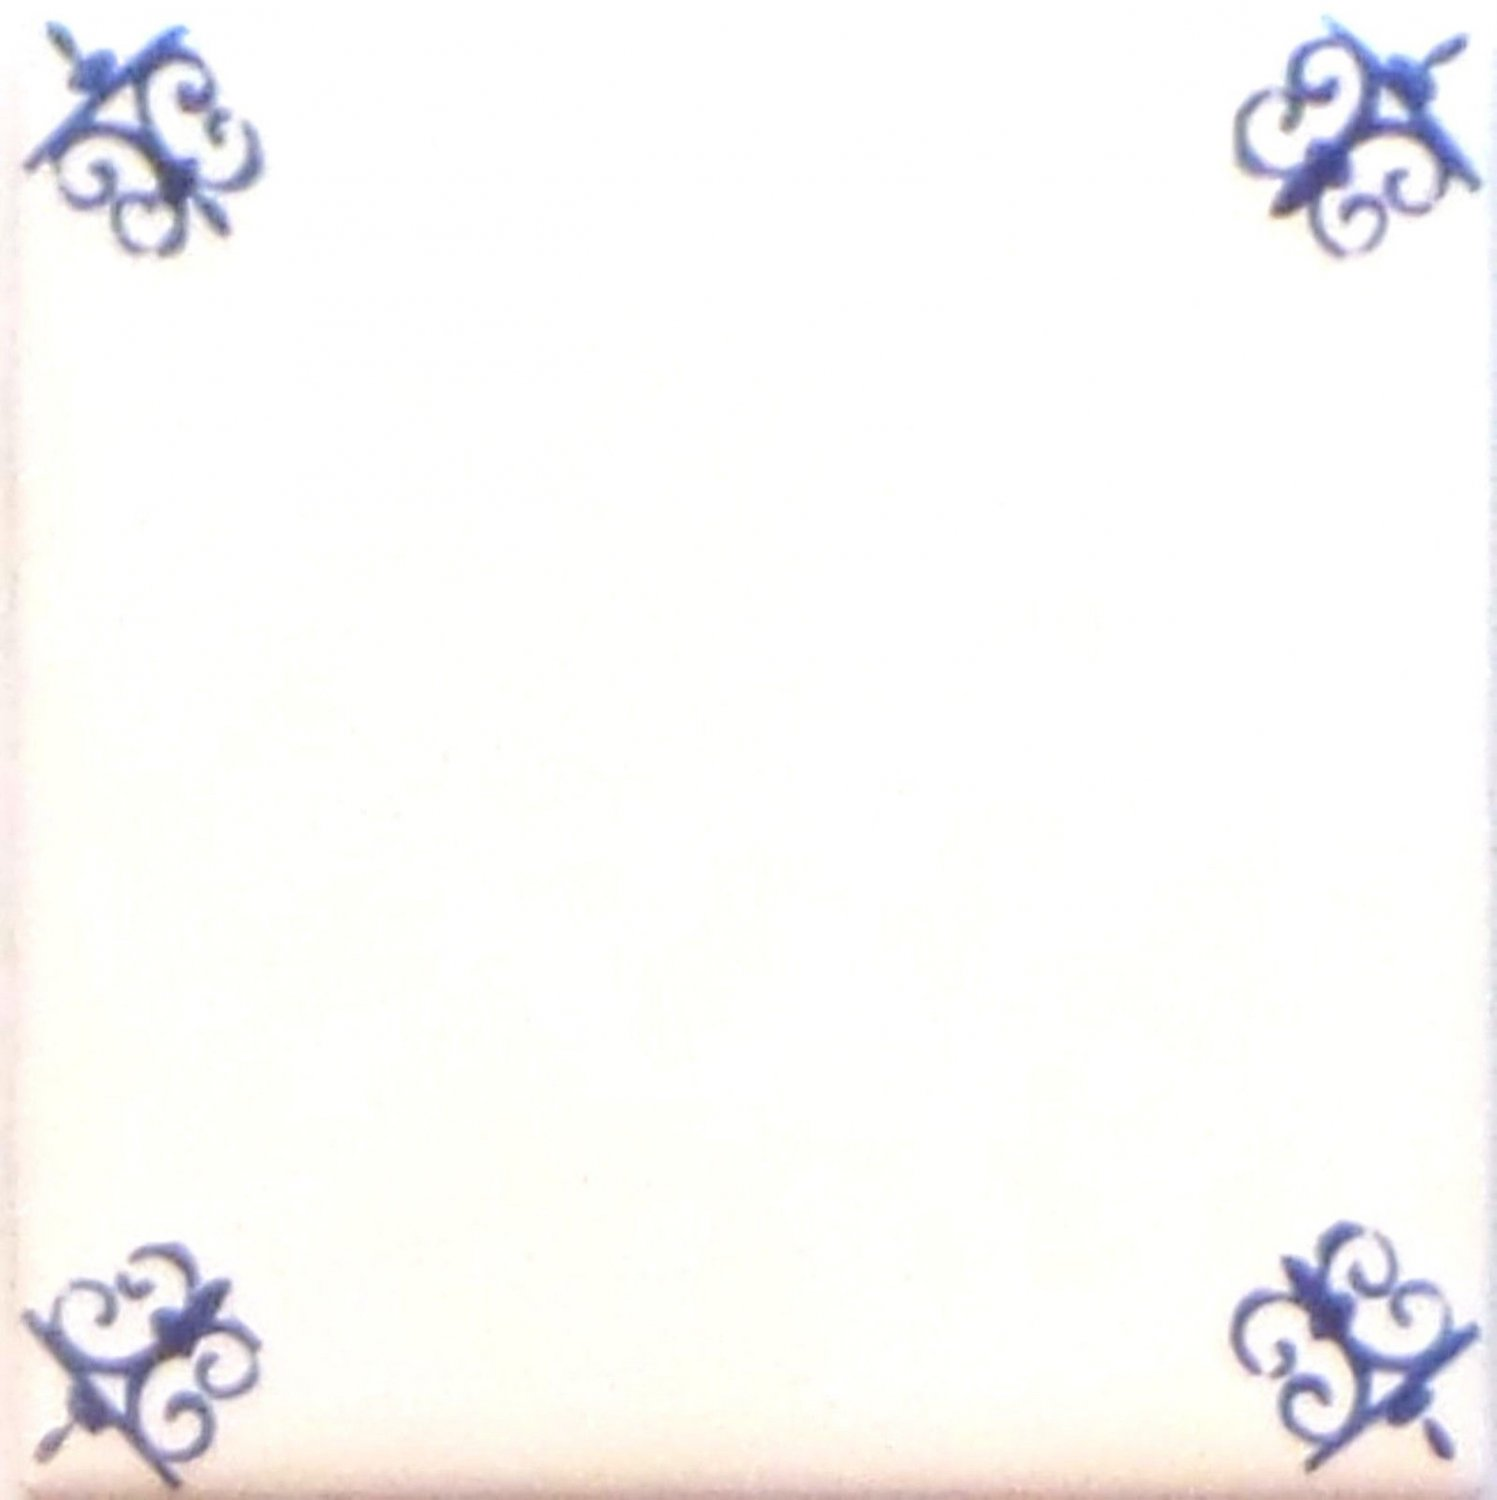 Blue Double Ox Tail Ceramic Tile Accent to Kiln Fired Back Splash Delft 4.25""